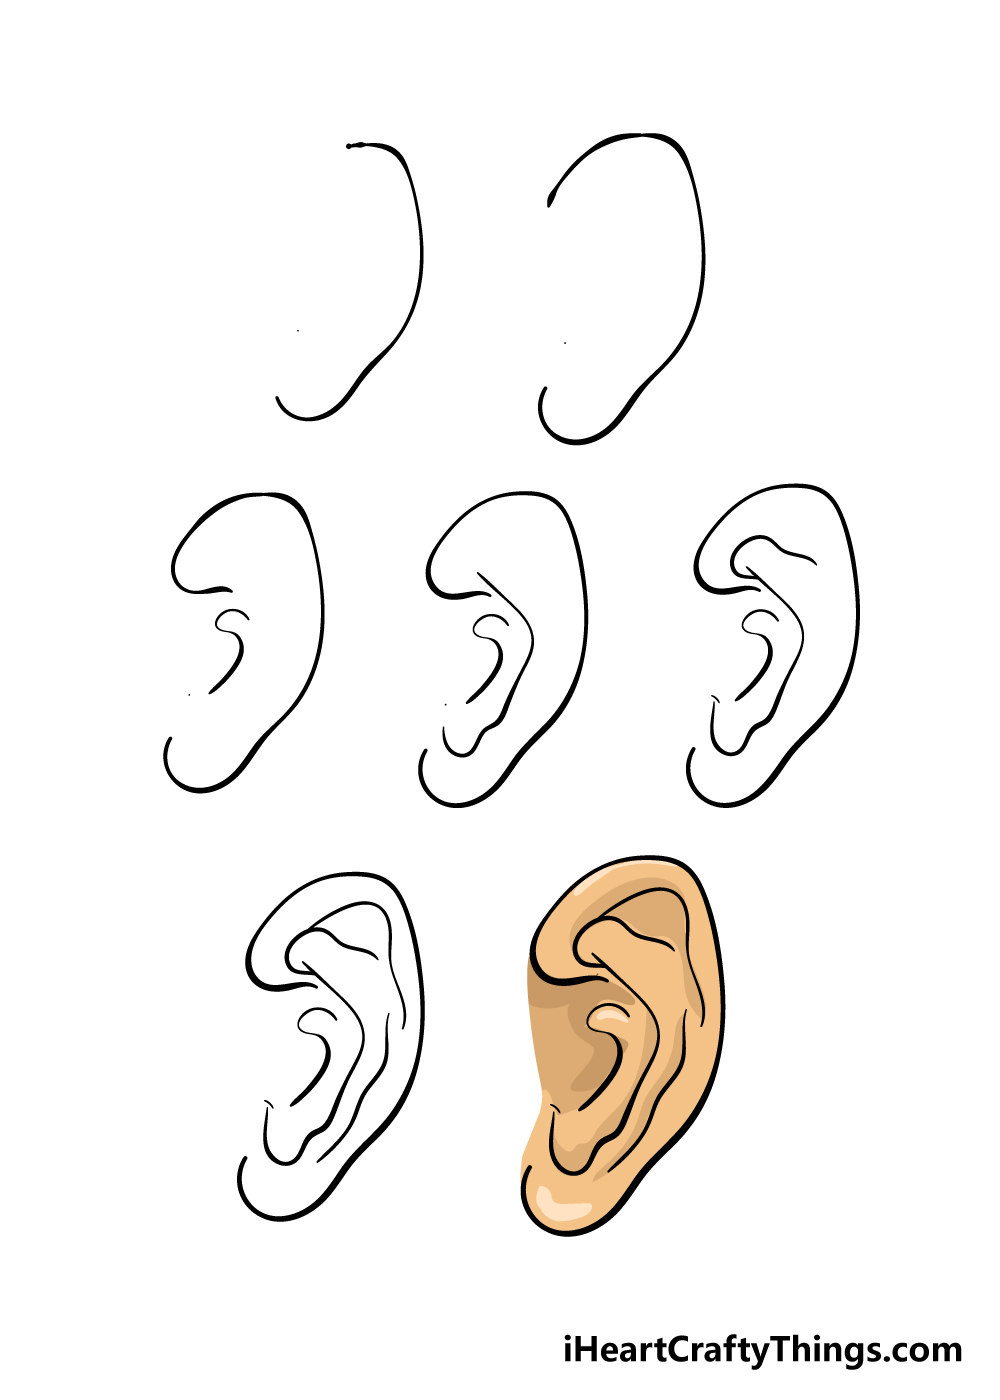 how to draw ear in 7 steps